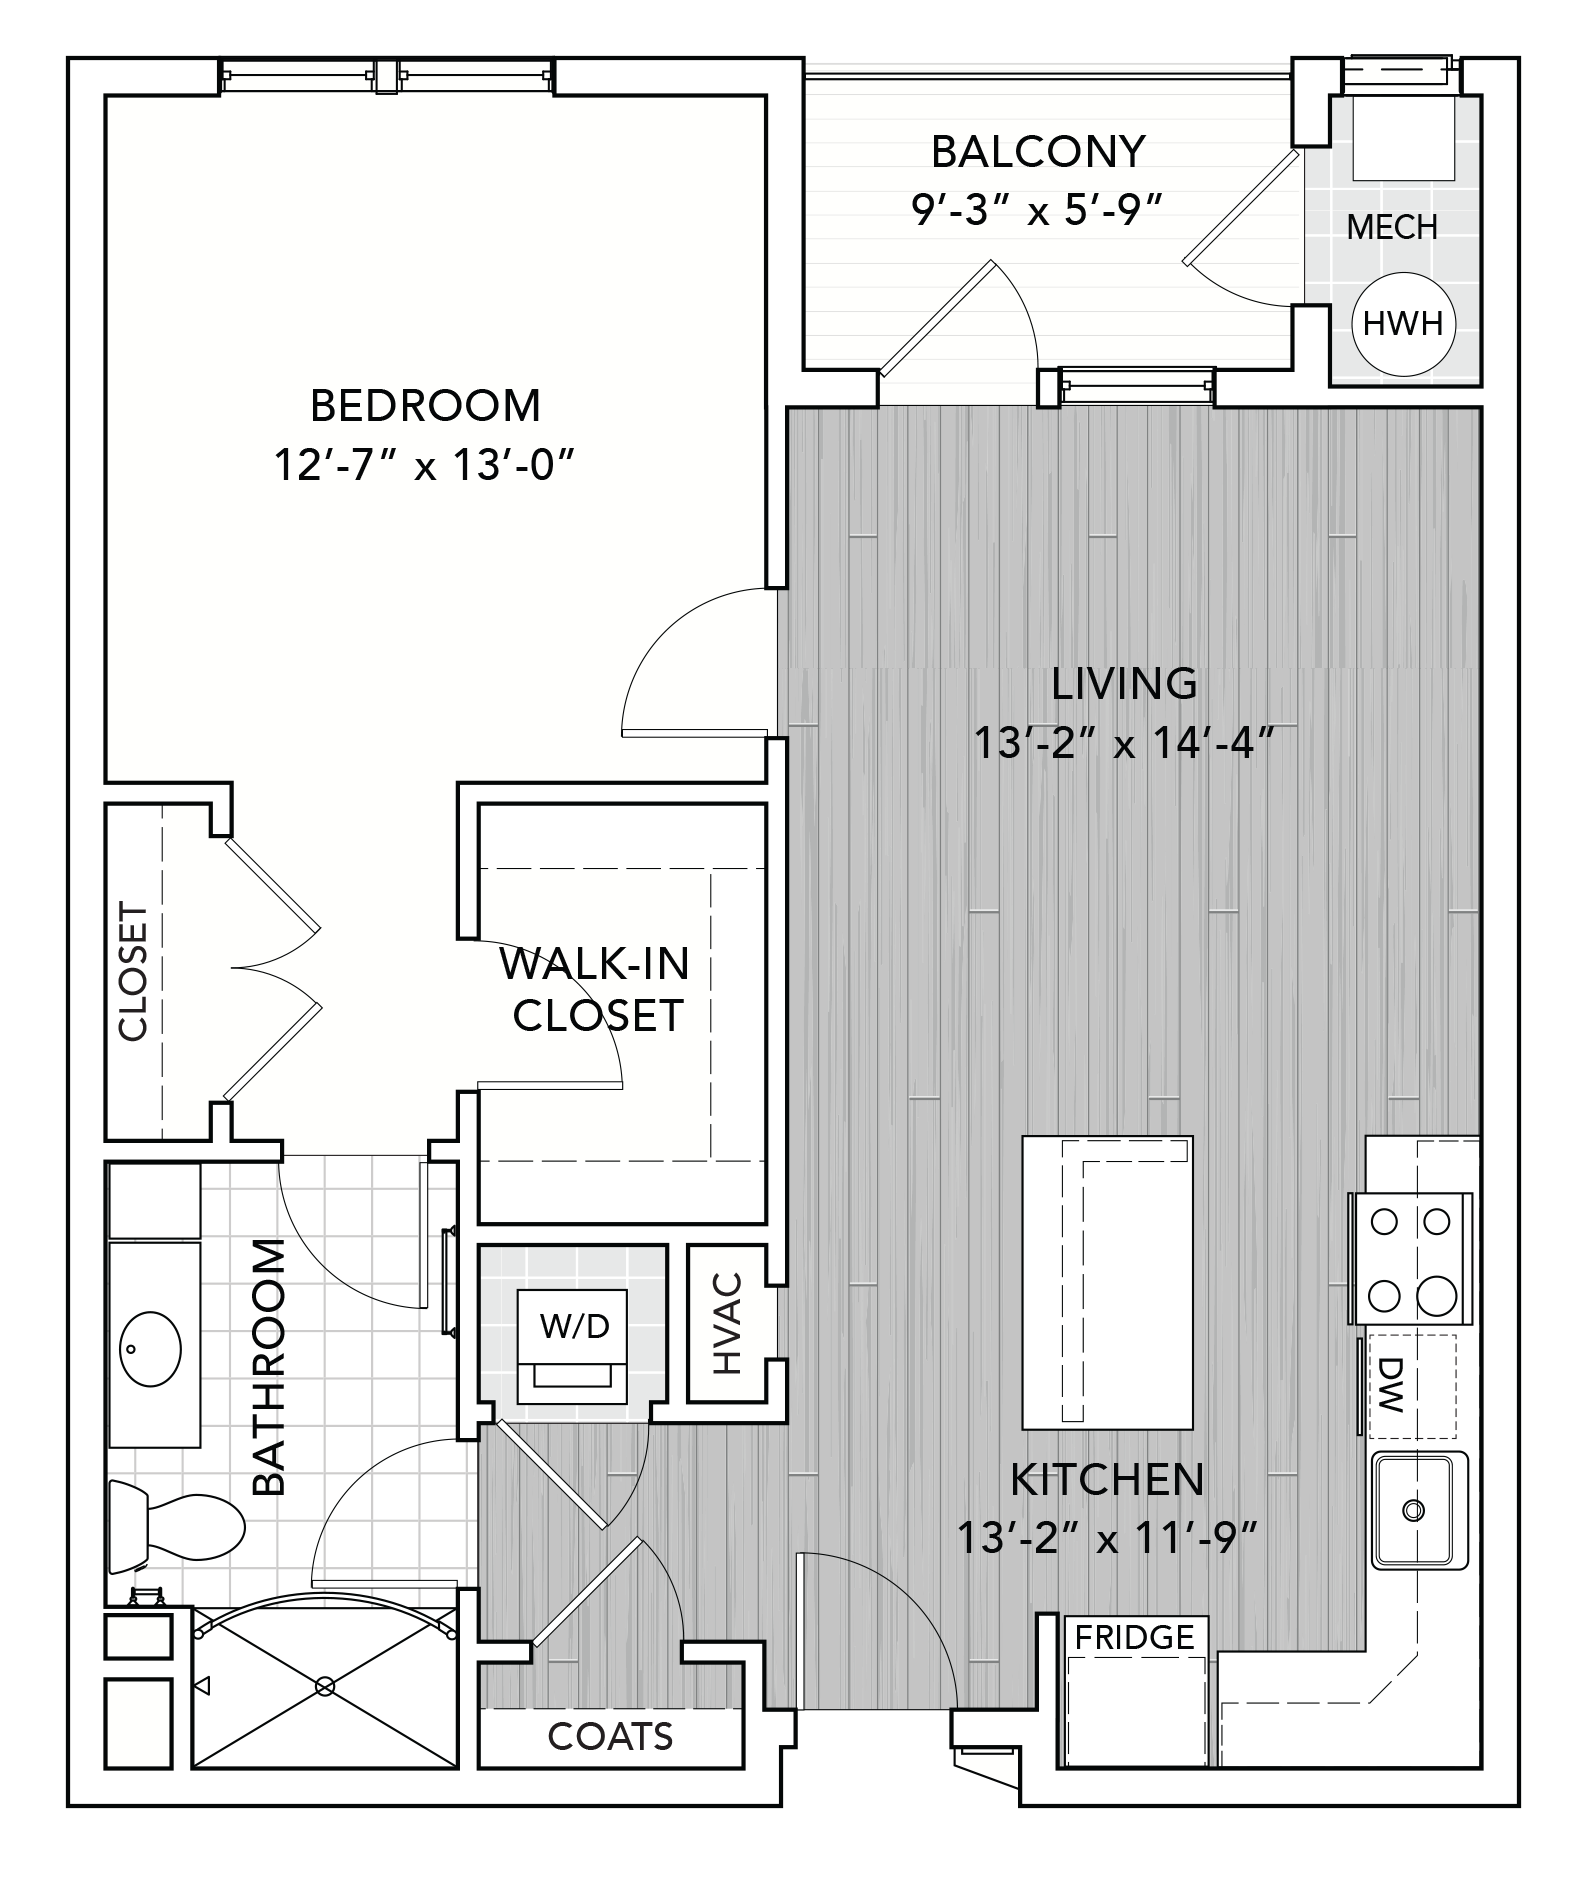 P0655013 parksquare a6 837 2 floorplan